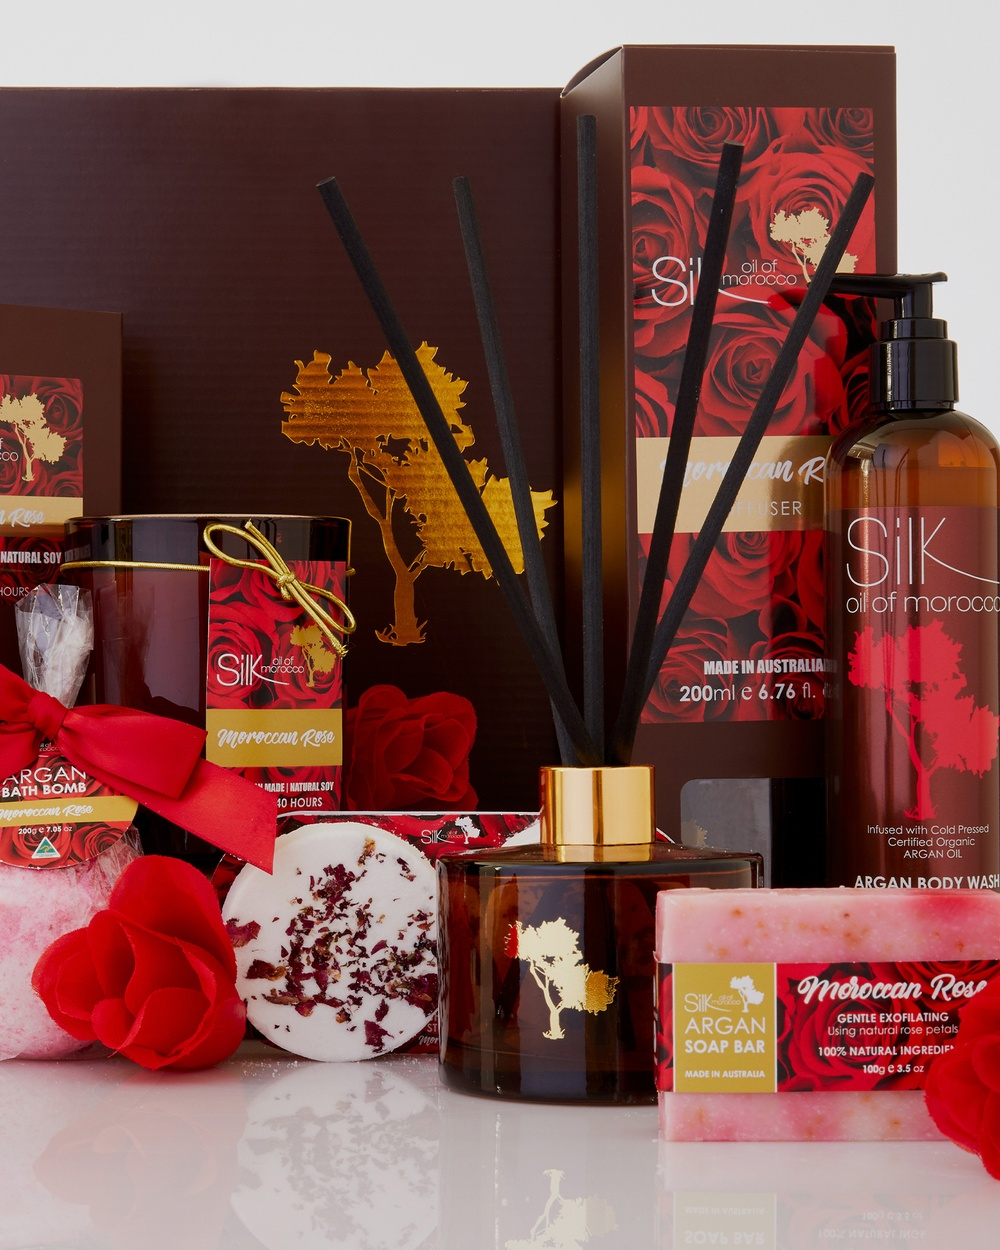 Silk Oil of Morocco Luxe Day Spa Collection Hamper Moroccan Rose Moroccan Rose